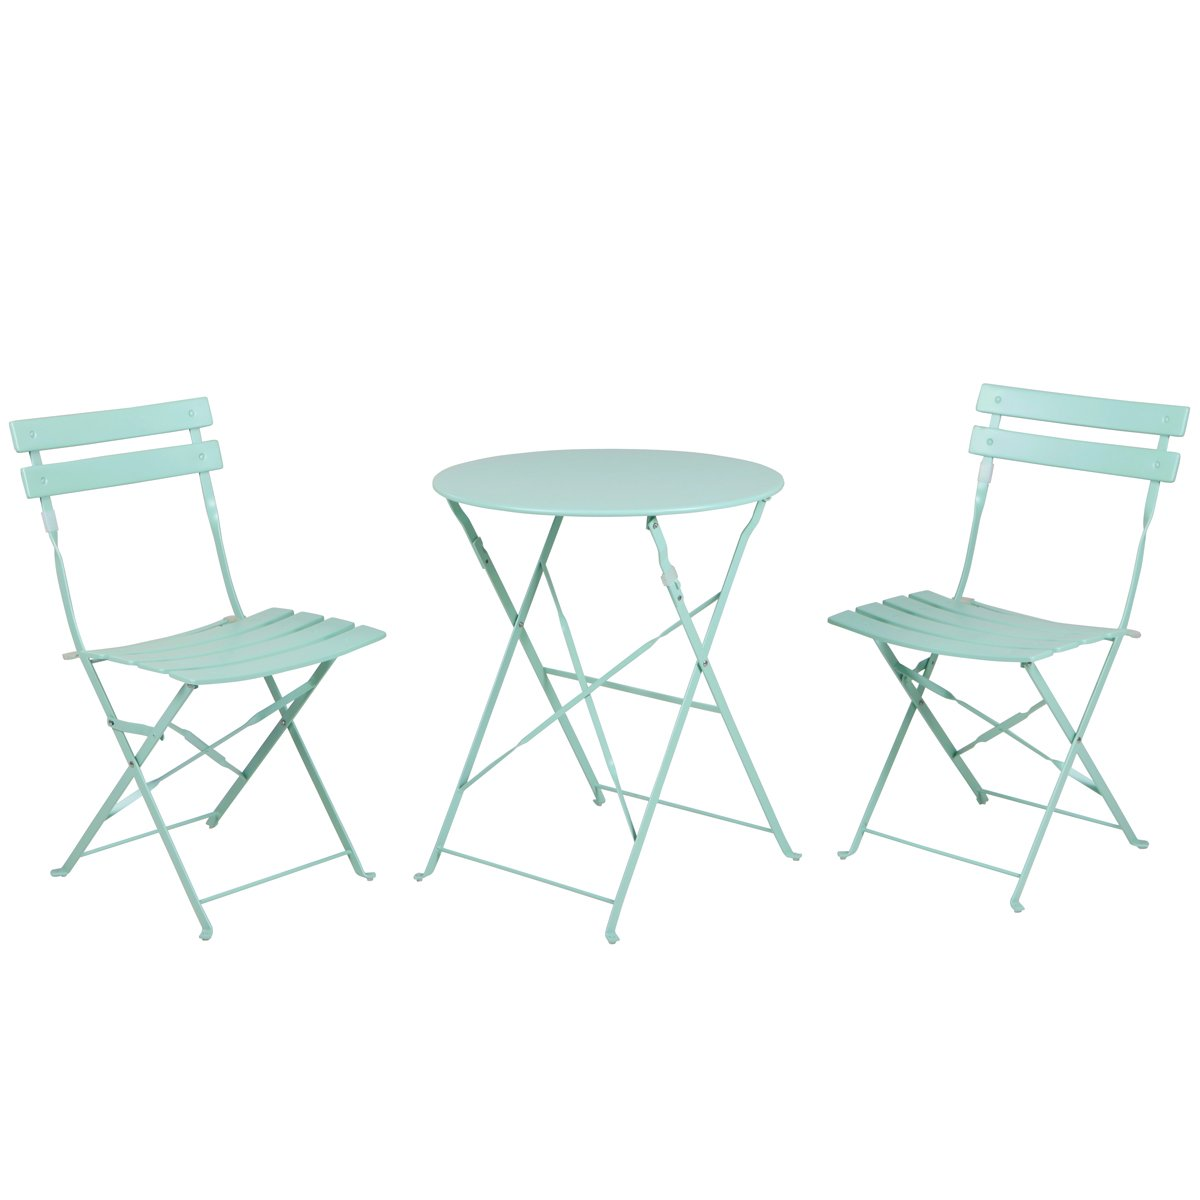 French Bistro set in Macaron Blue